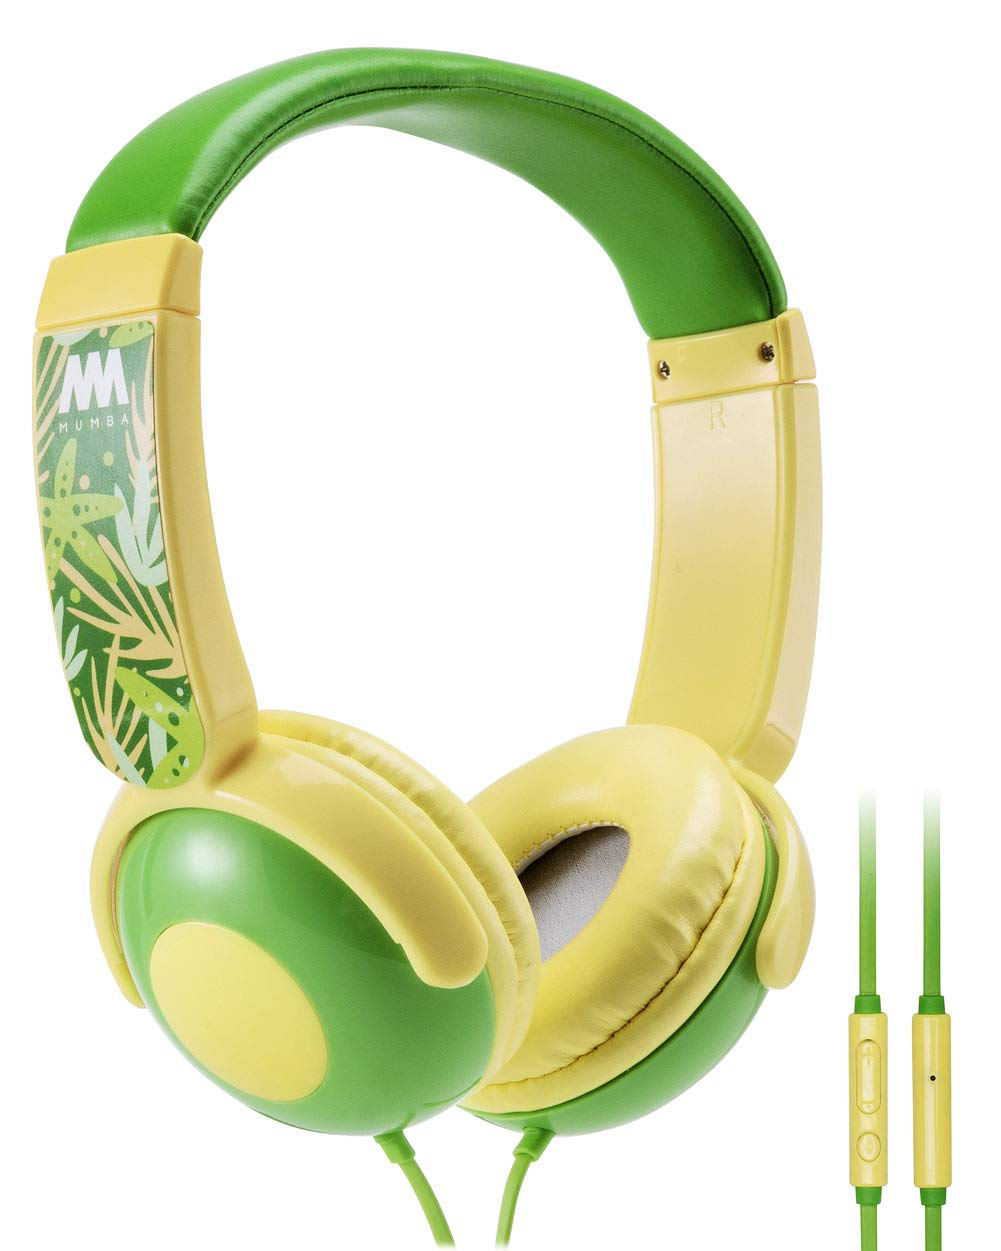 Kids Headphones, Mumba Volume Limited Over Ear Headphones Girls, 85 Safe Listening Adjustable Headsets with Microphone for Kids Children Yellow